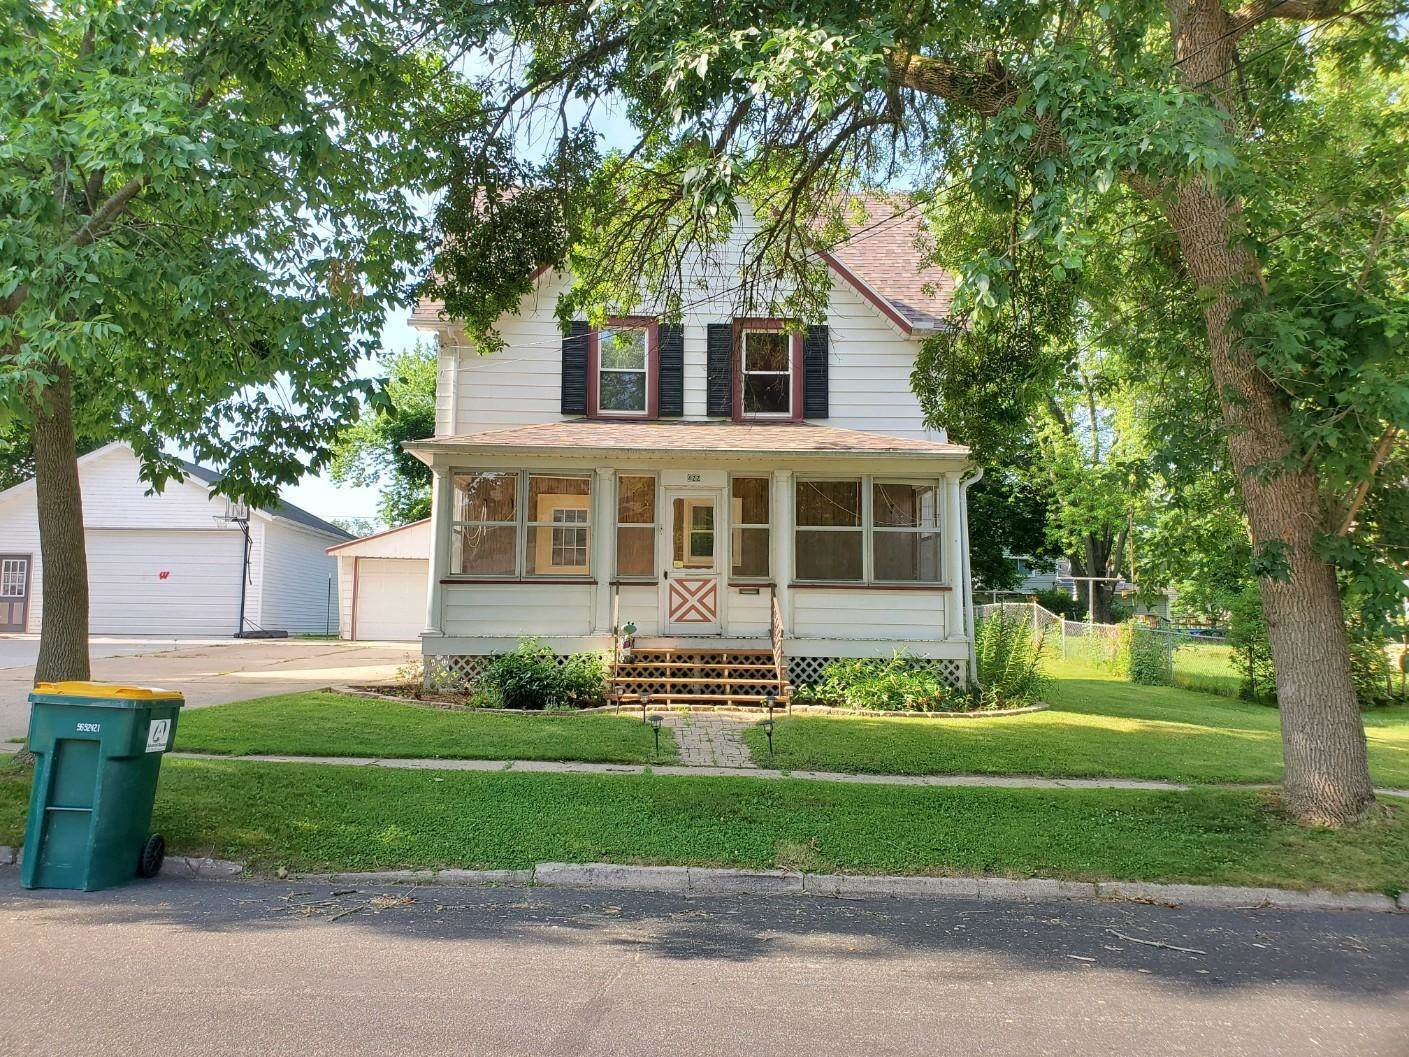 422 Converse St, Fort Atkinson, WI 53538